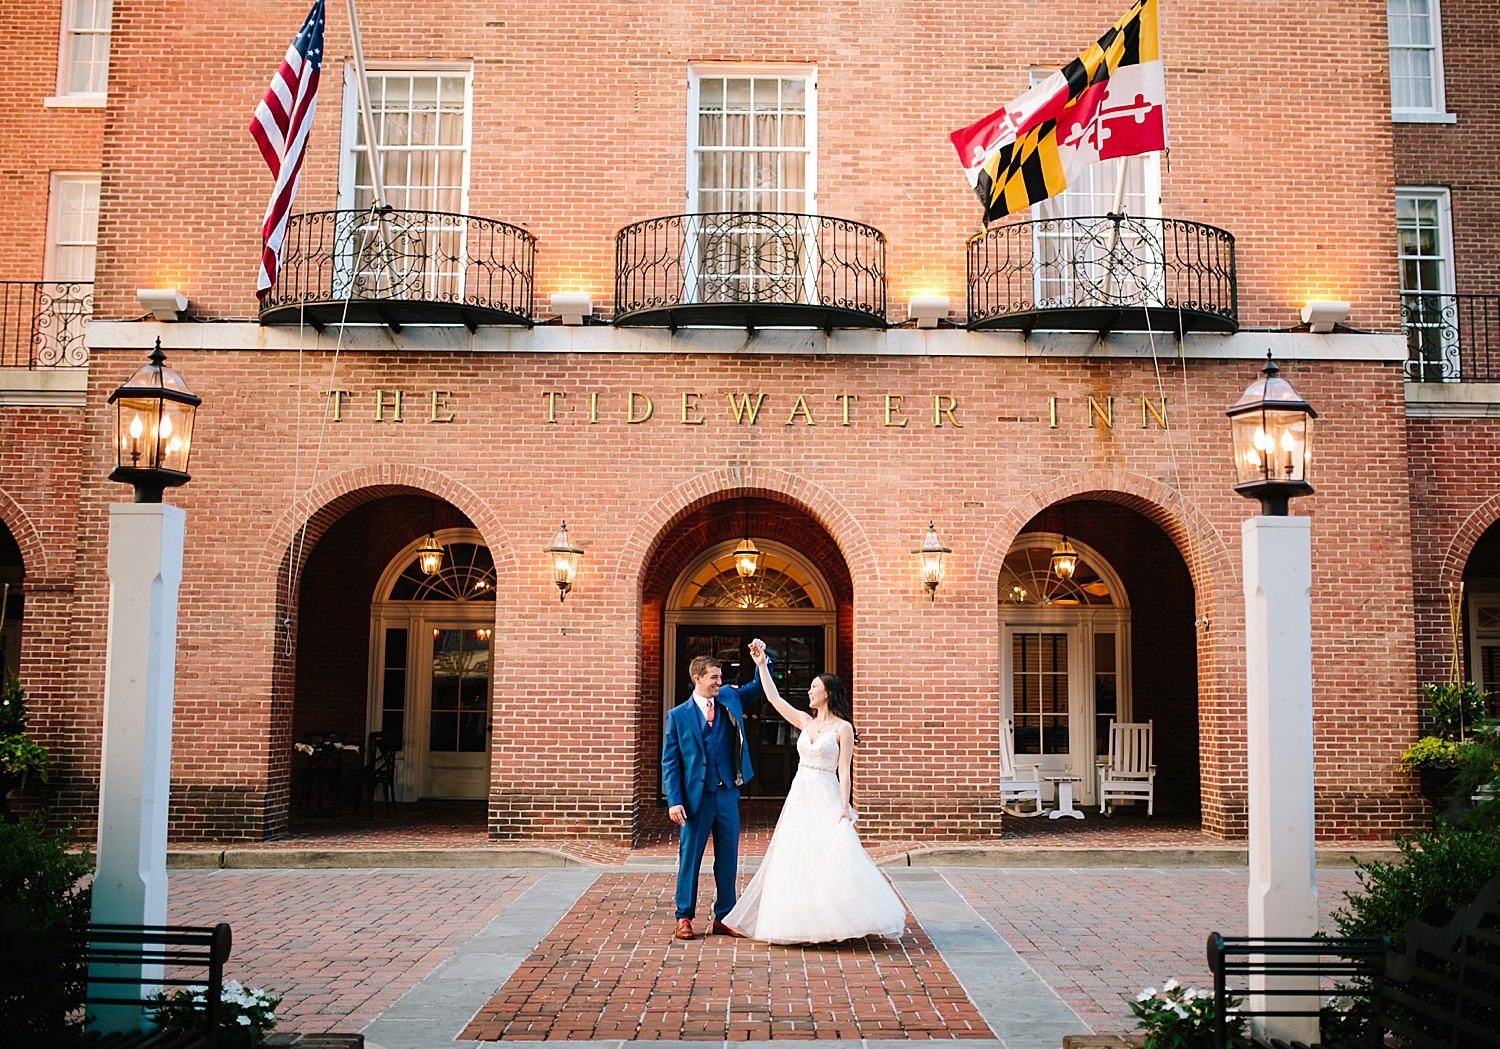 angelabruce_tidewater_inn_maryland_harrypotter_nerdy_wedding_image_076.jpg